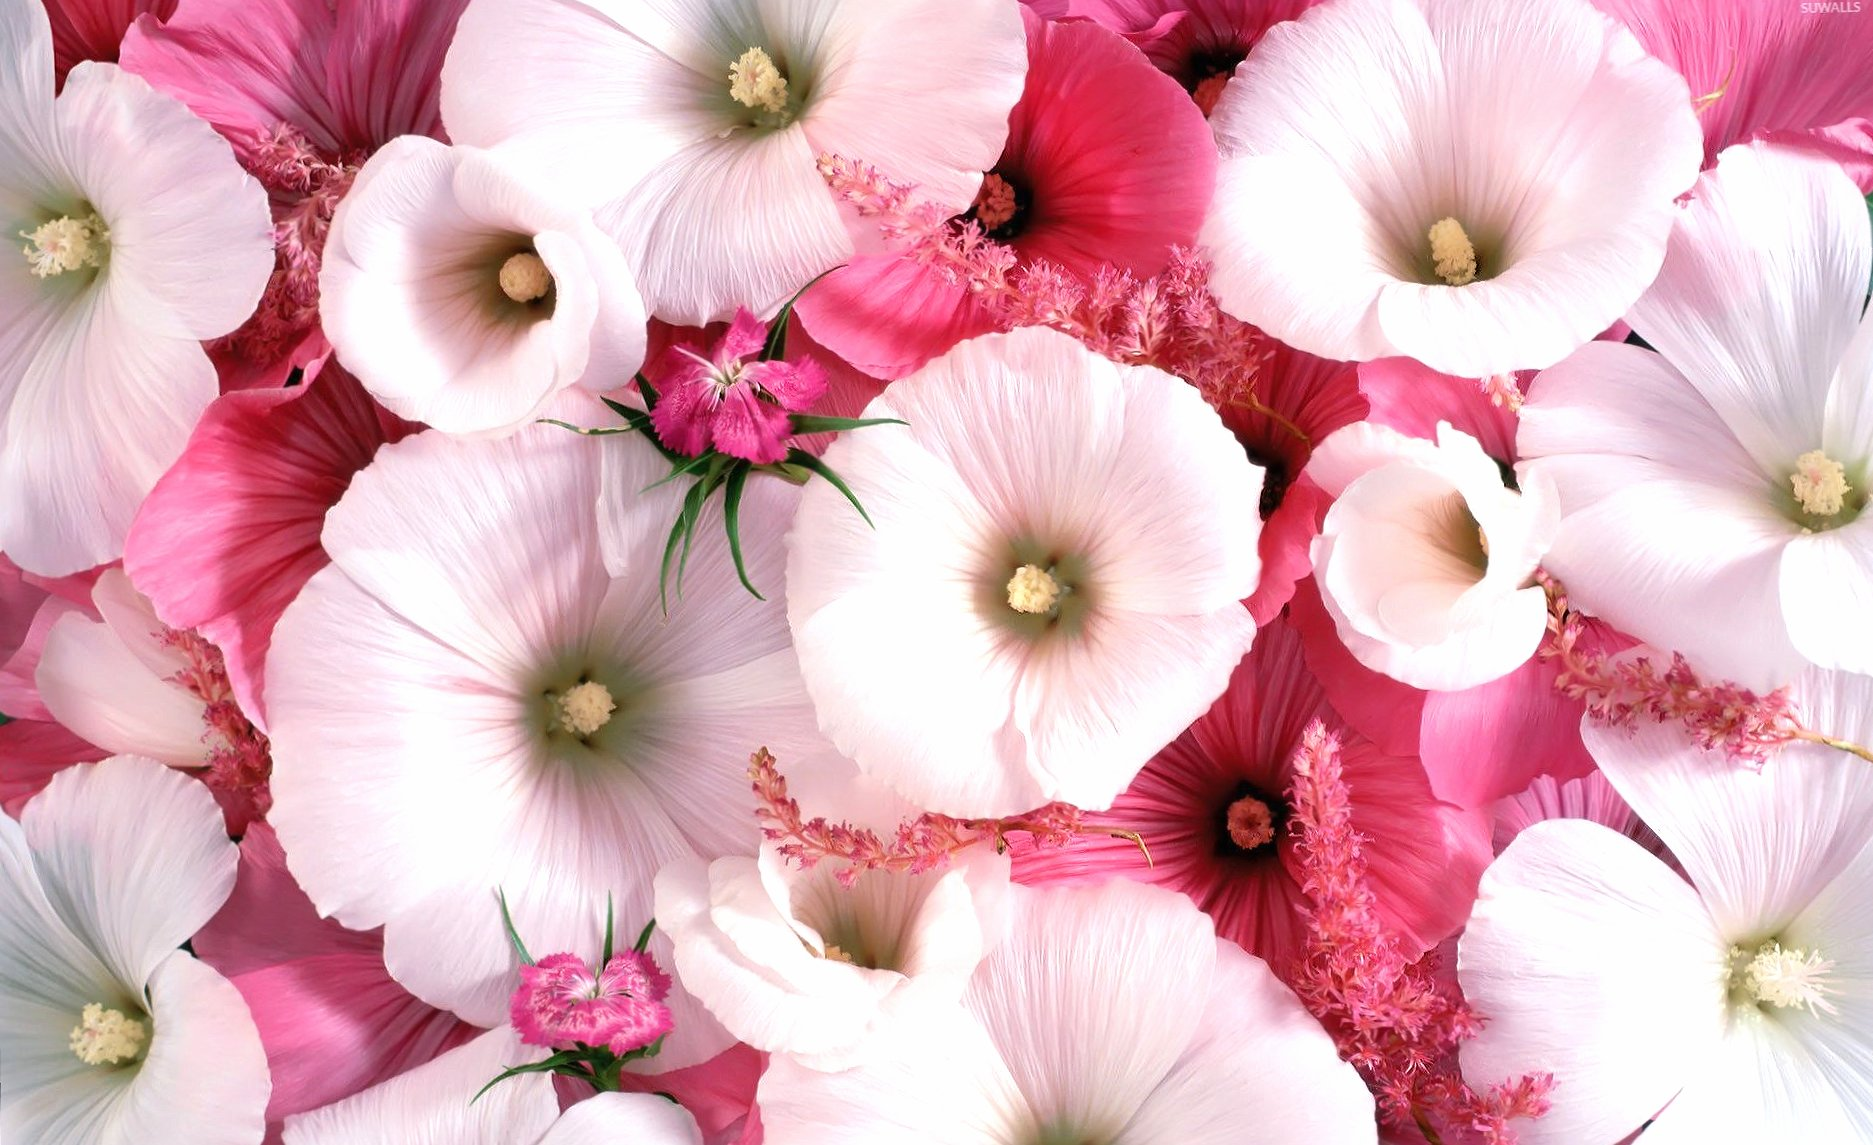 White and pink hollyhocks wallpapers HD quality